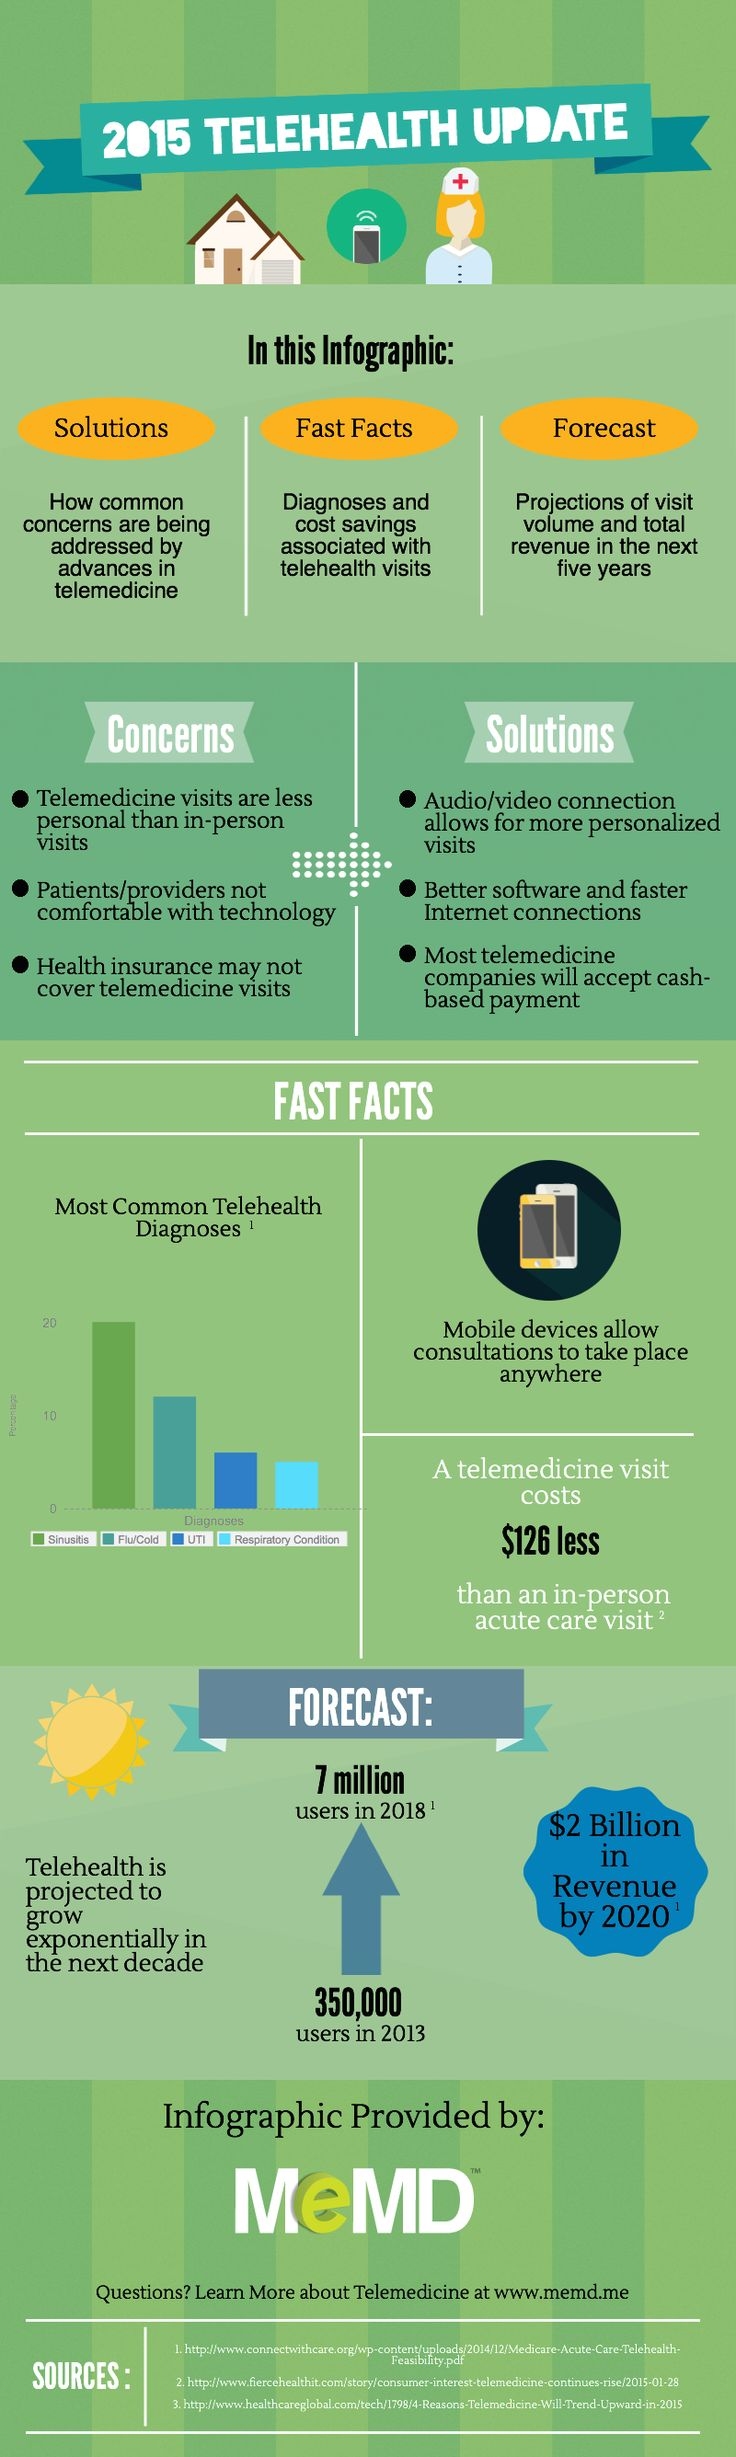 #Telemedicine is being used to streamline healthcare options. This infographic highlights the major updates since 2015, showing projected growth and revenue. #telehealth